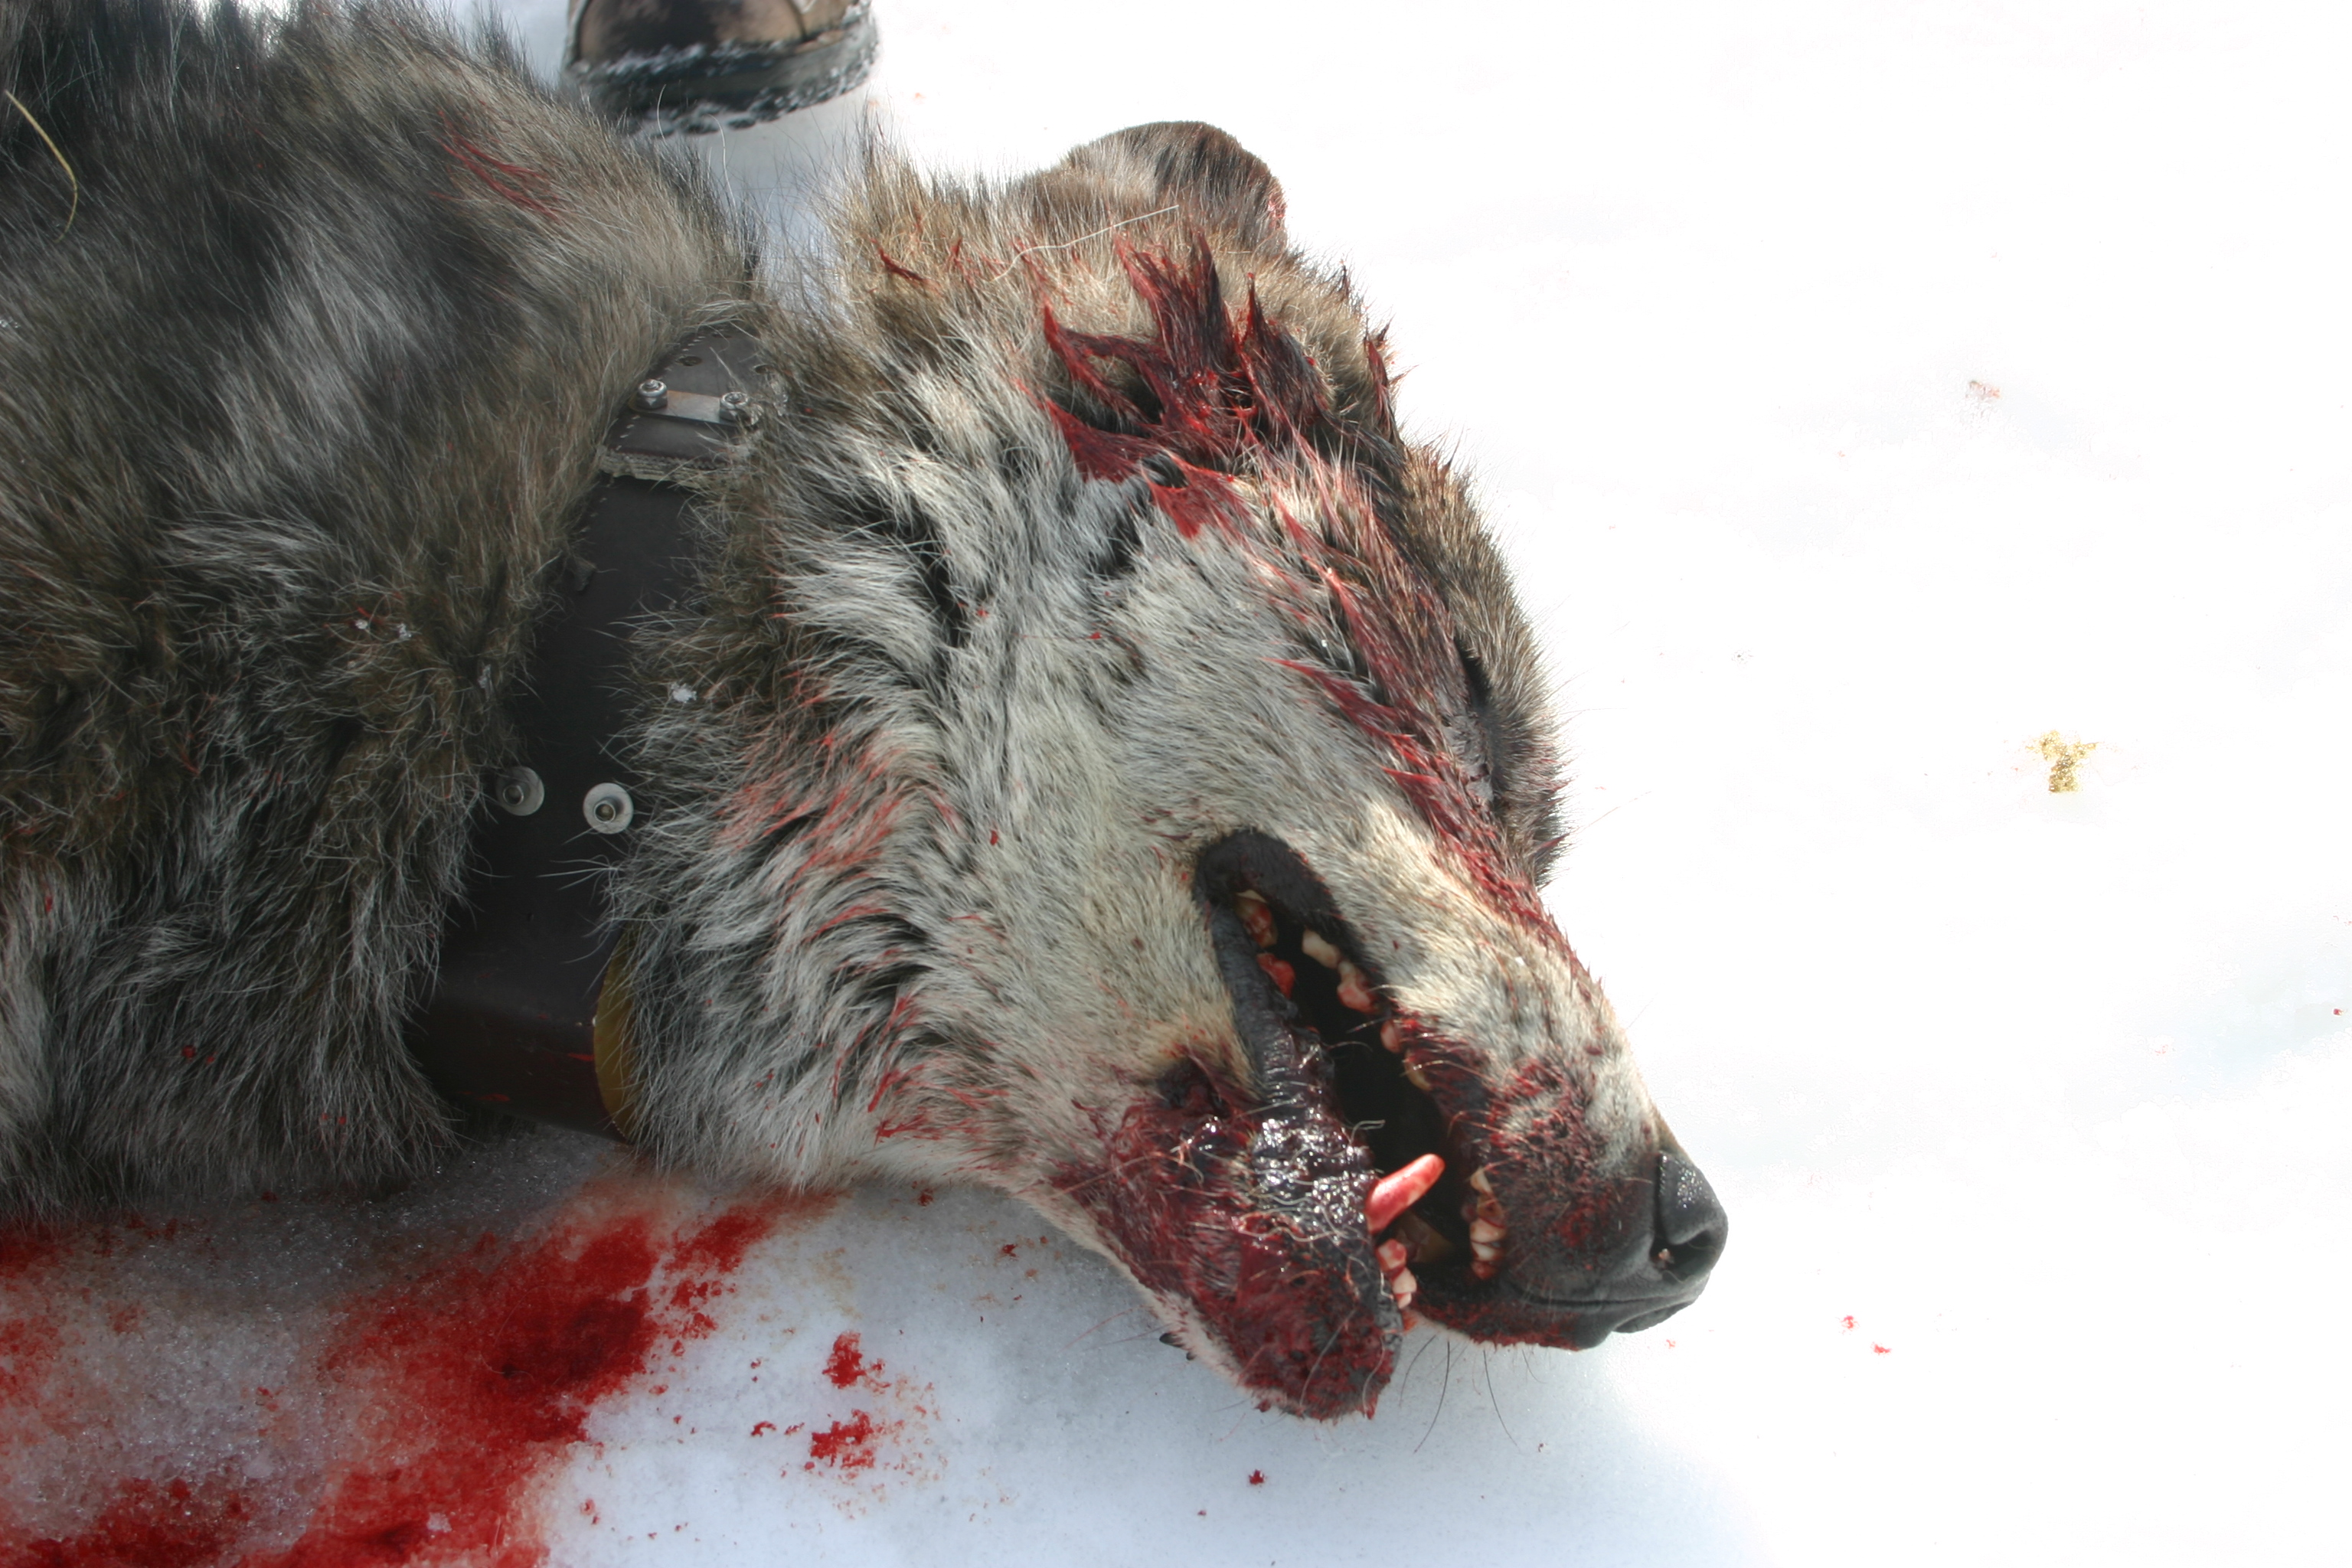 golden eagle hunting wolves. The future of wolves in Idaho